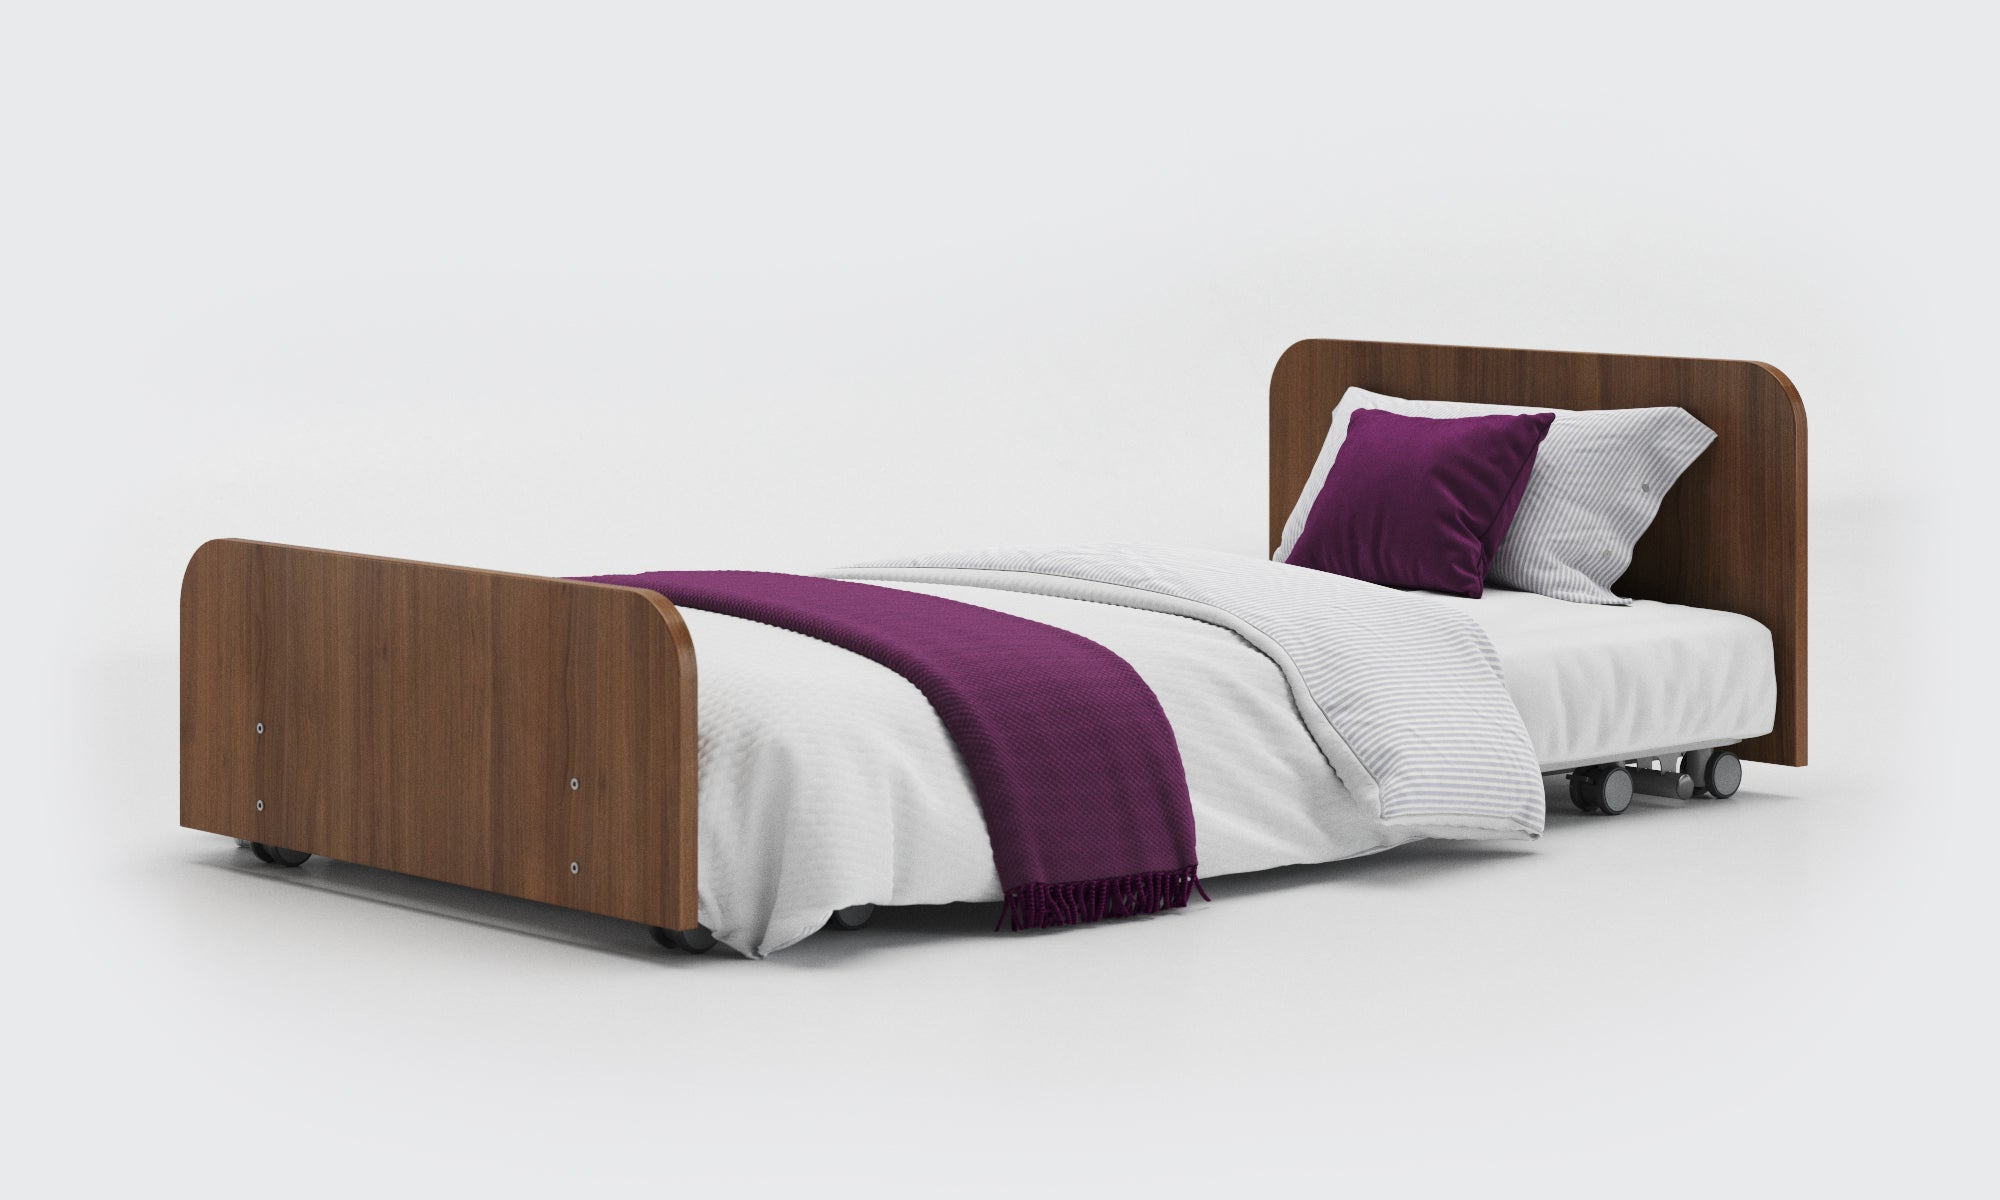 Solo Wooden Discreet Hospital Bed